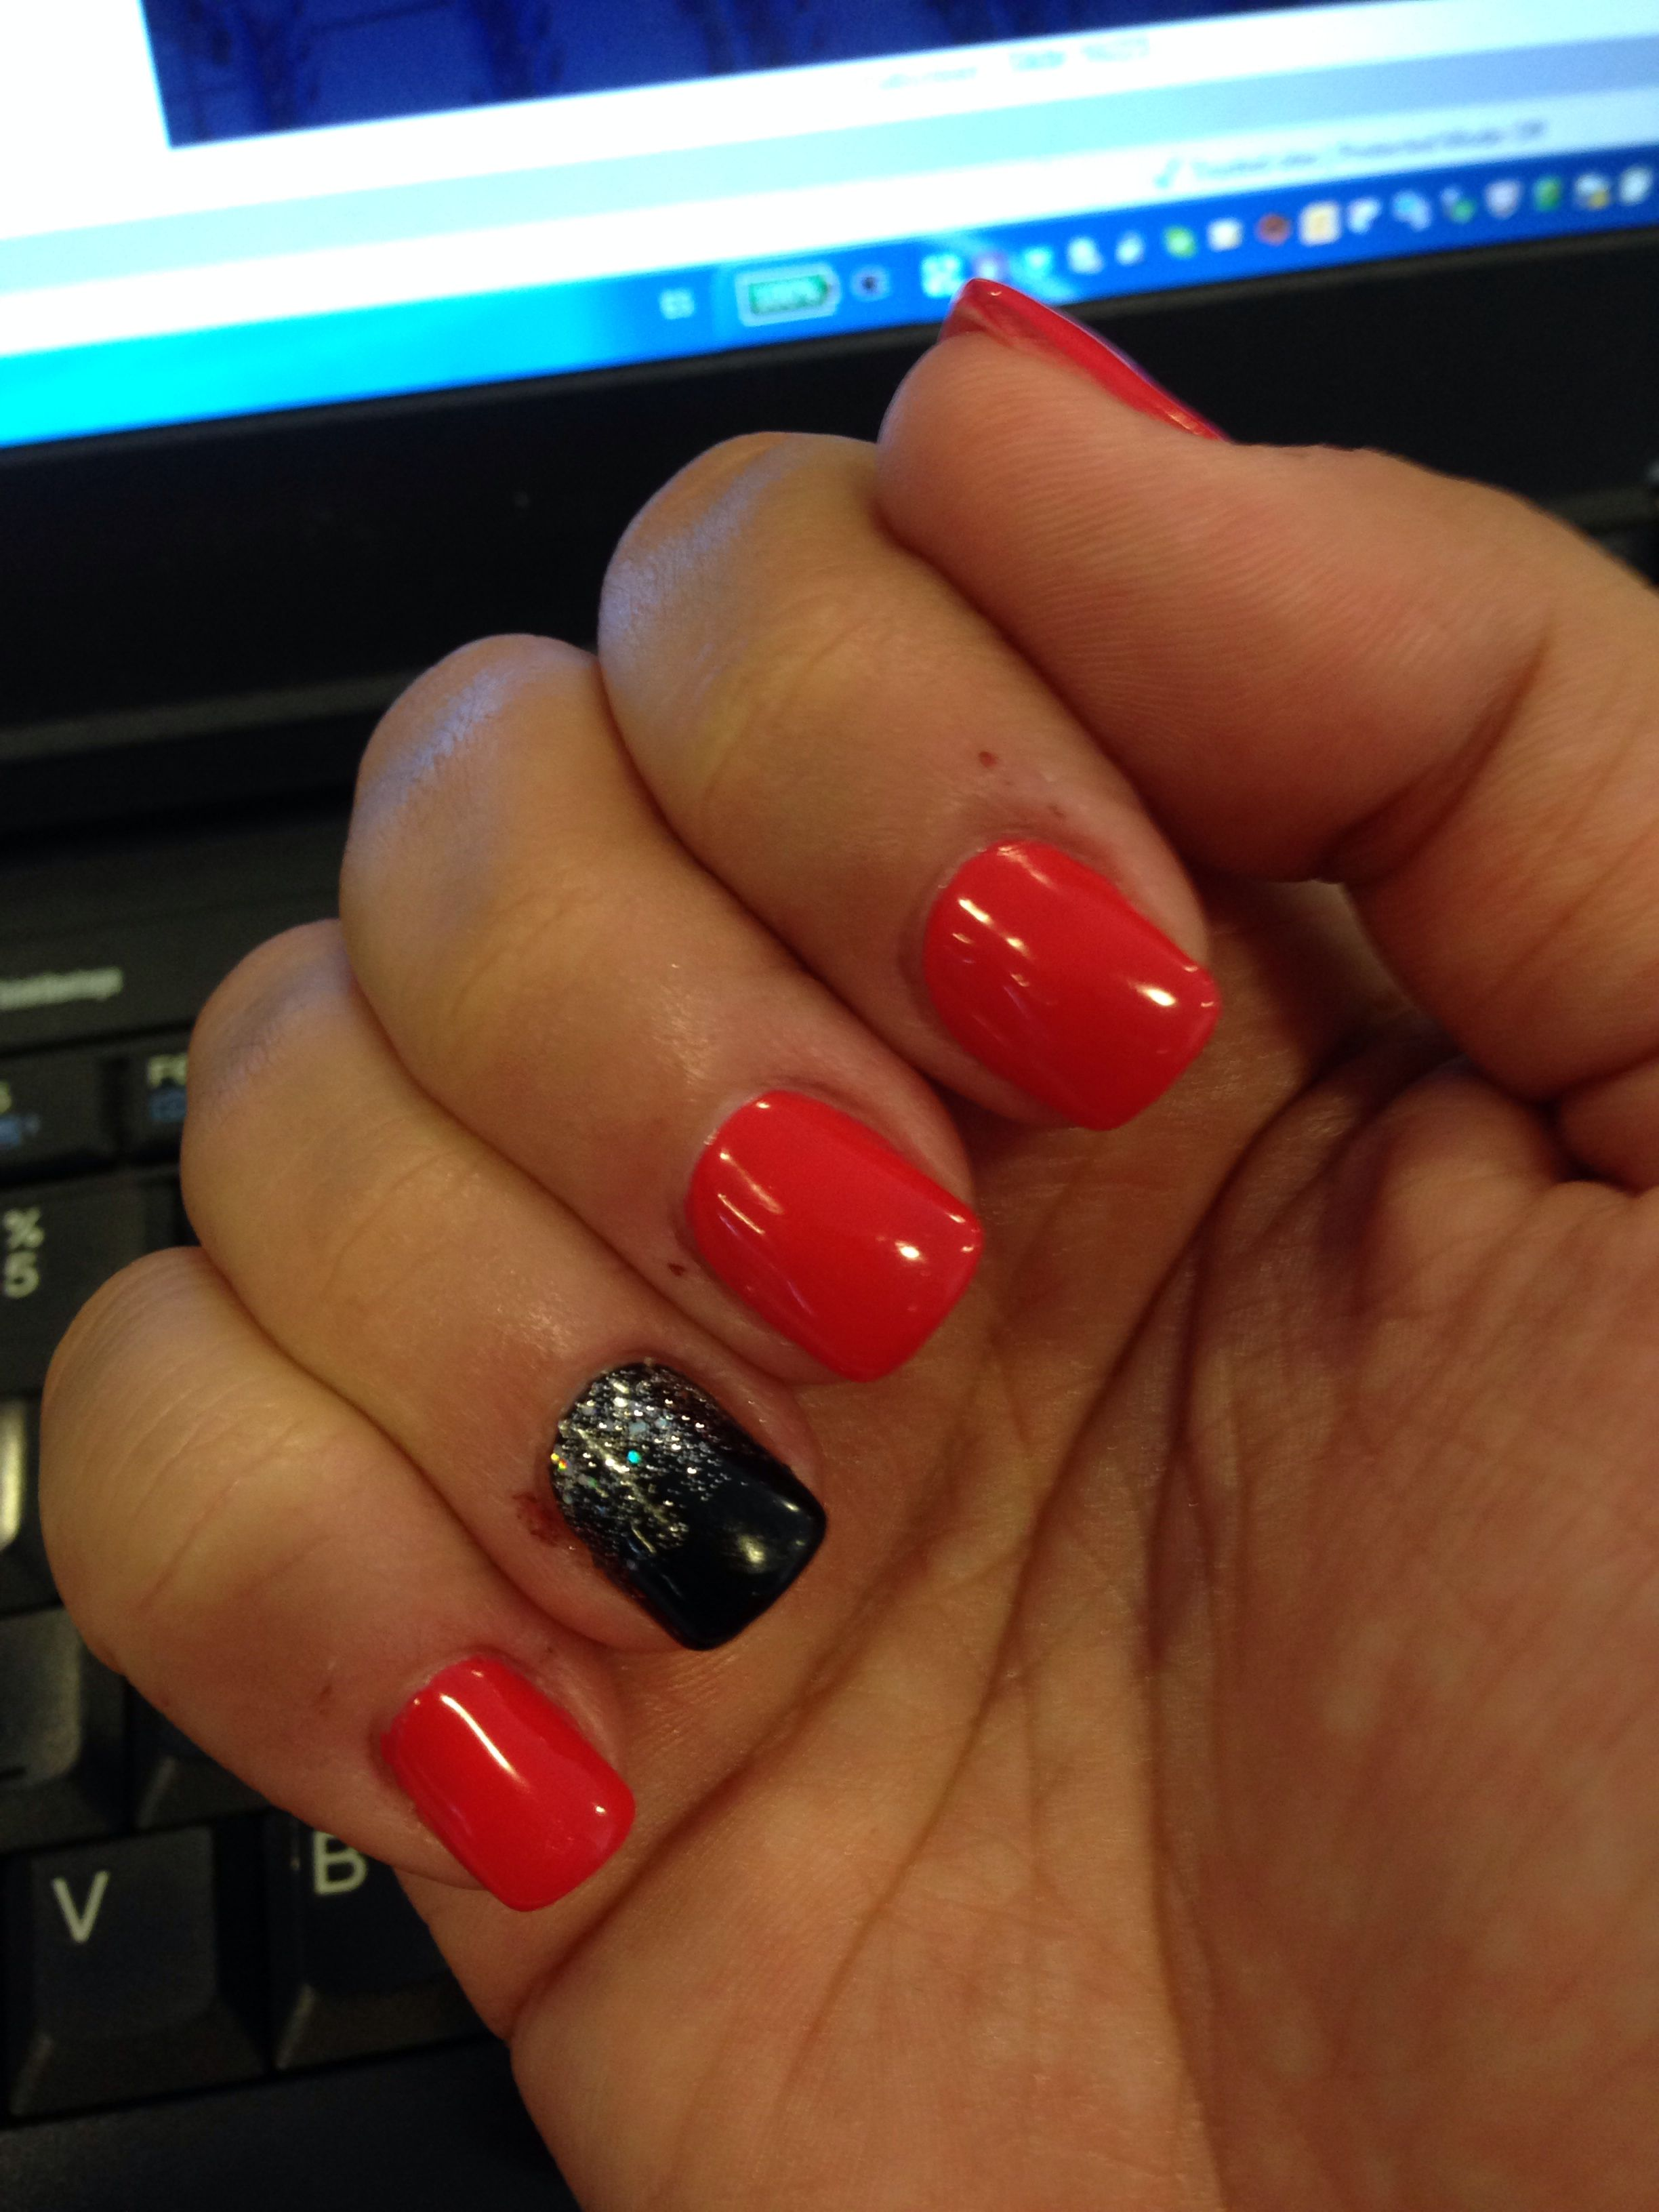 My nails today, trying something different